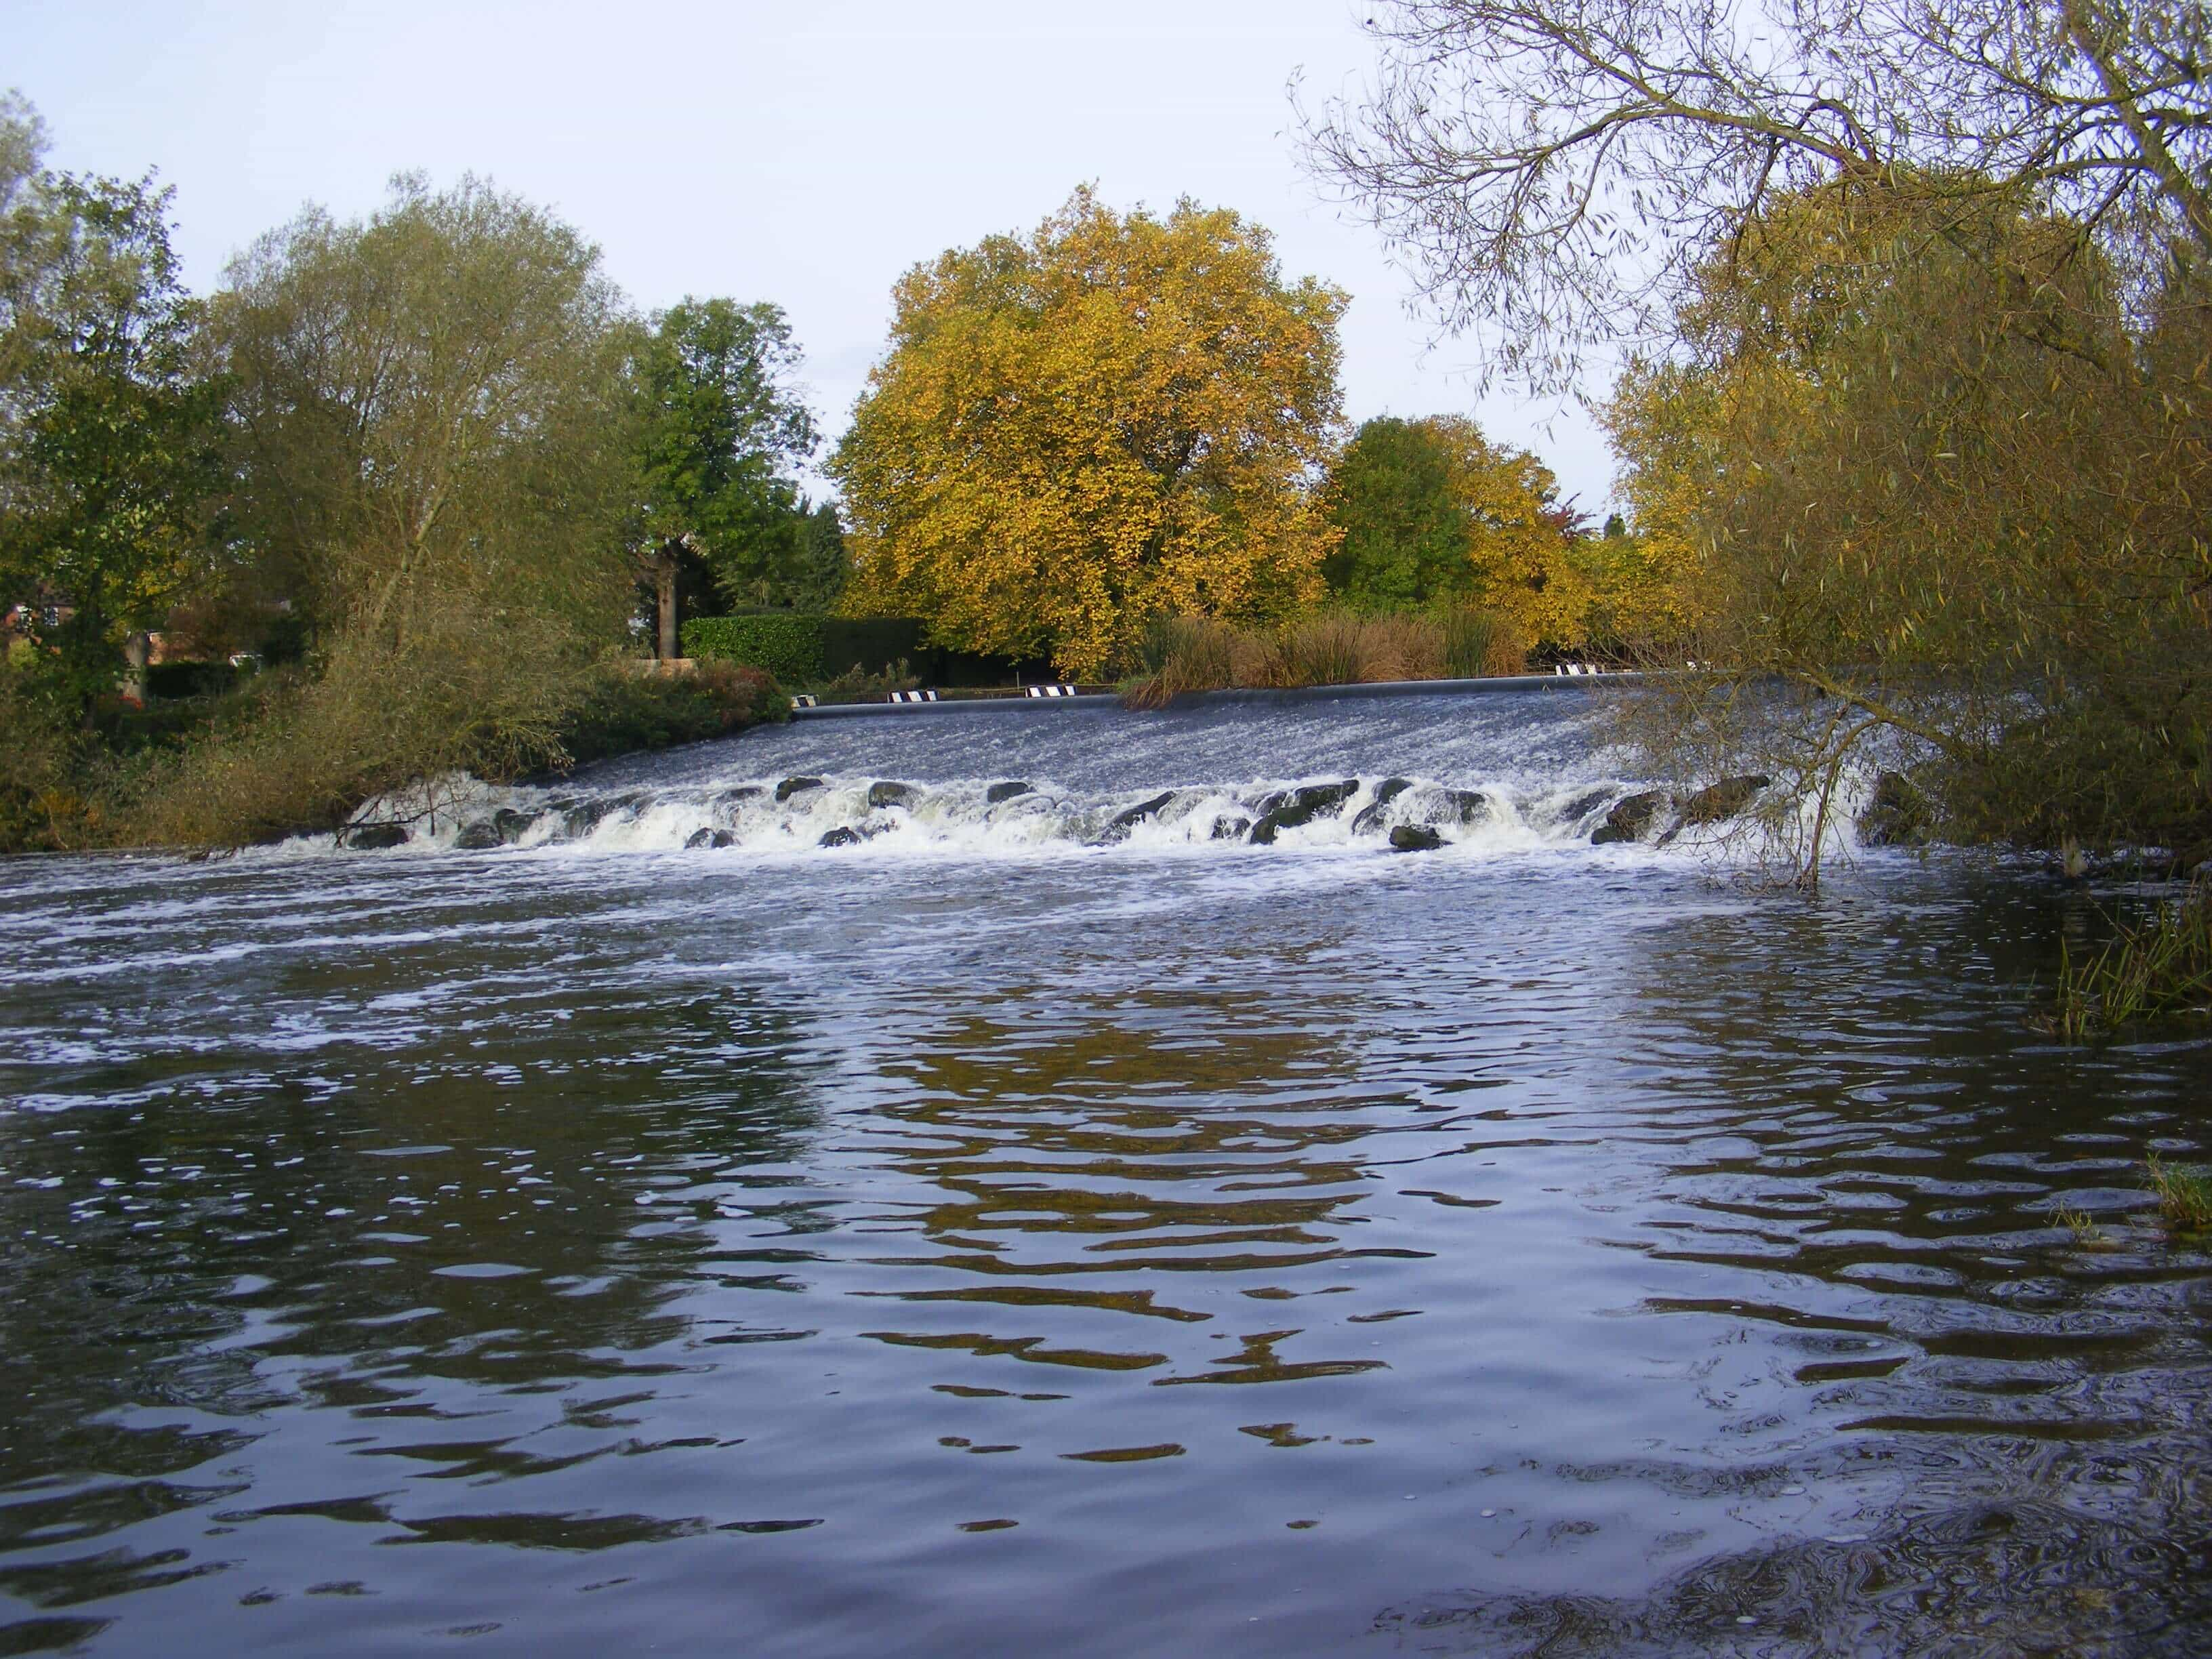 renewables first - archimedes screws for pershore weir